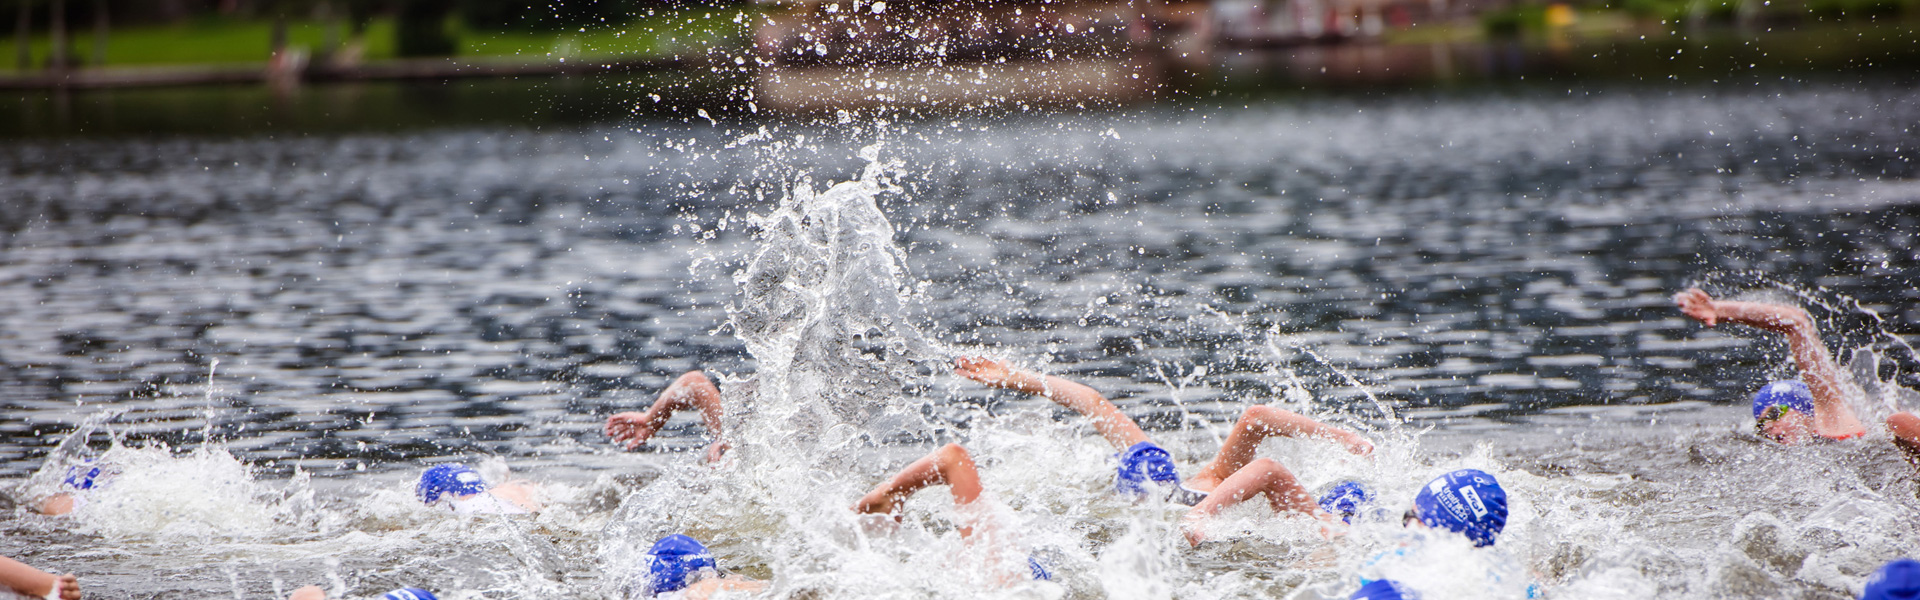 """<div style=""""background: rgba(0,0,0,0.3) ; padding: 15px;""""><h2 style=""""color: #FFFFFF;"""">SWIMMING</h2> <p>jumping into the fresh water ….. <br />  <br /></p></div>"""